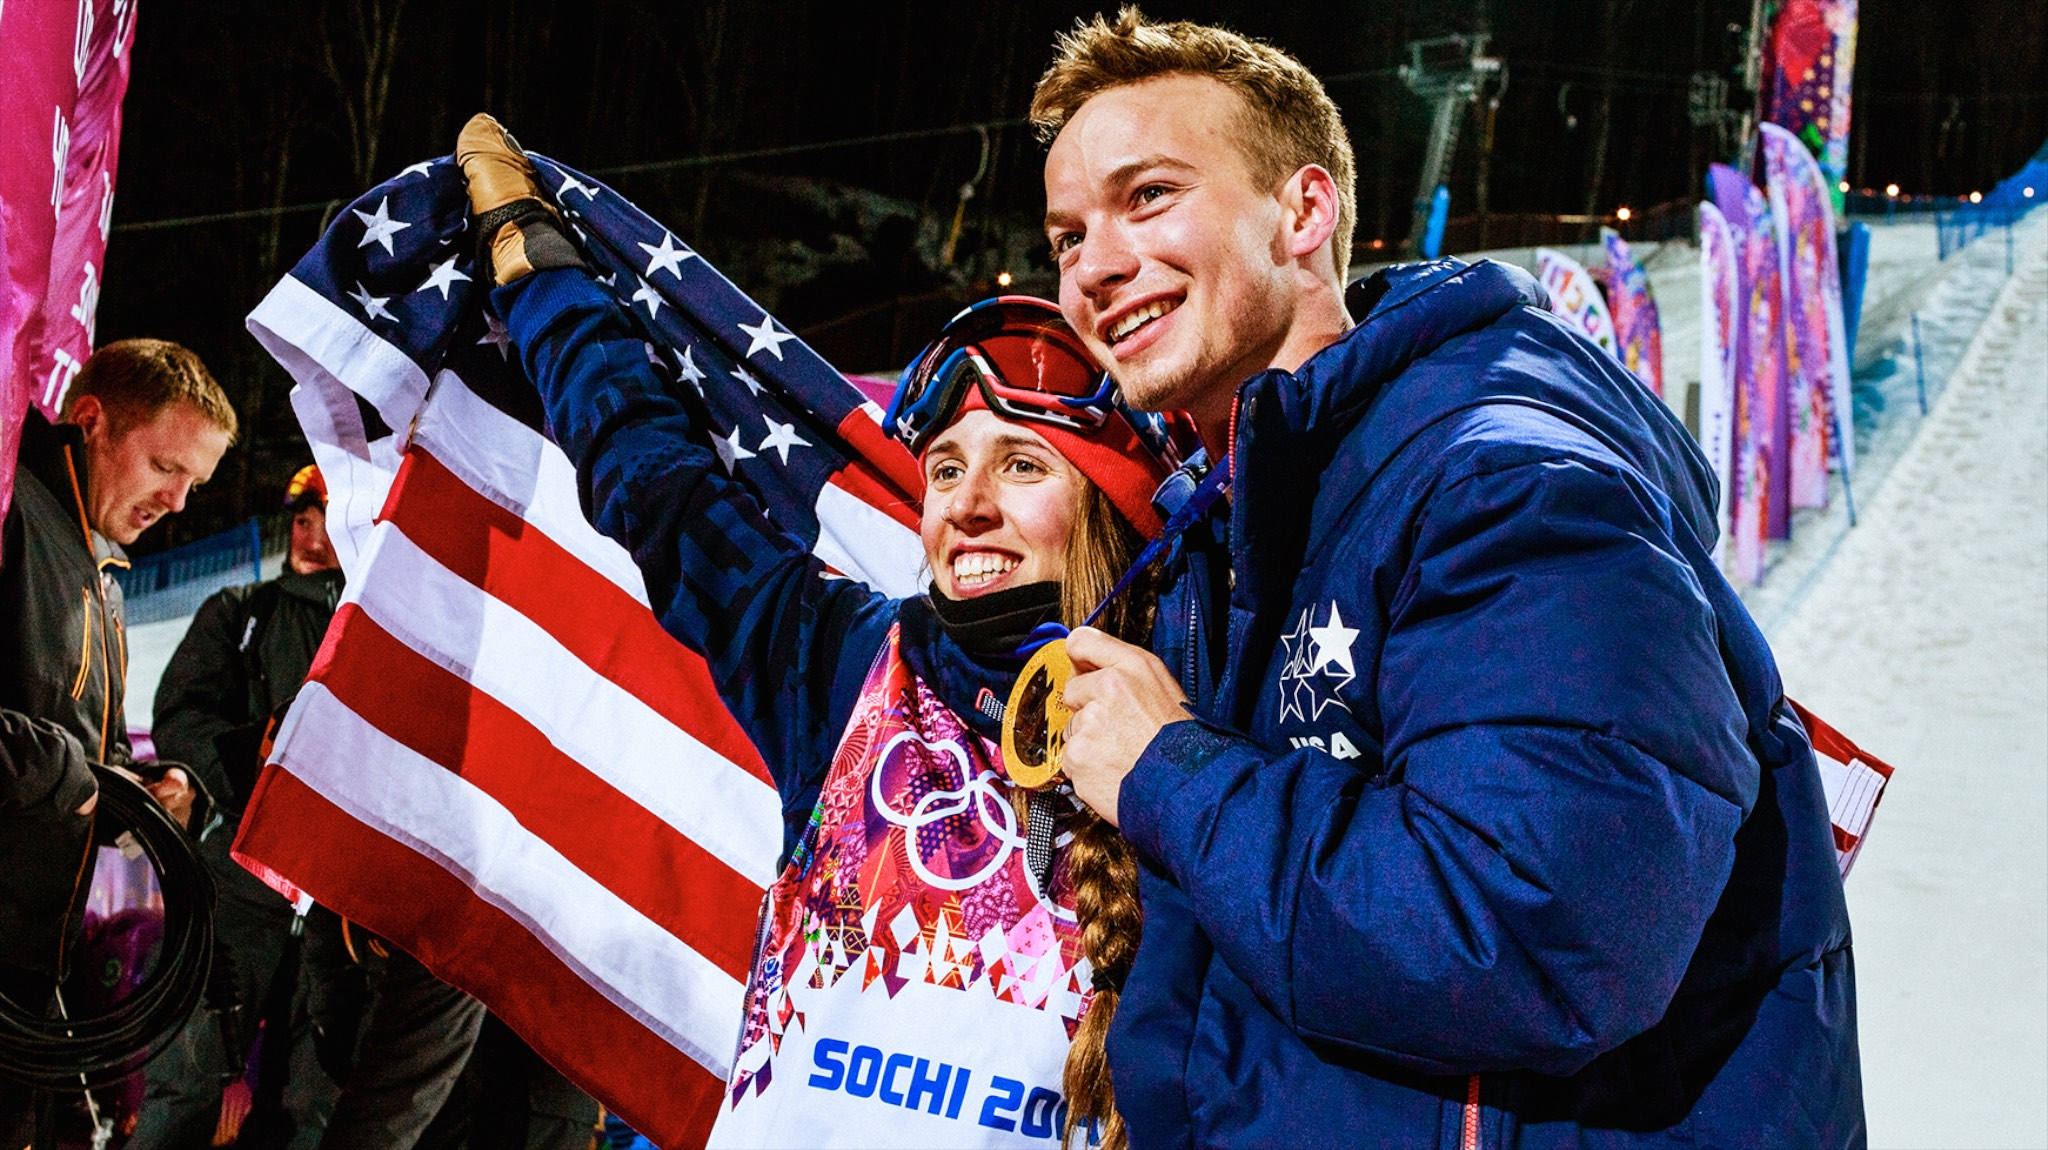 Sochi Winners, One Year Later